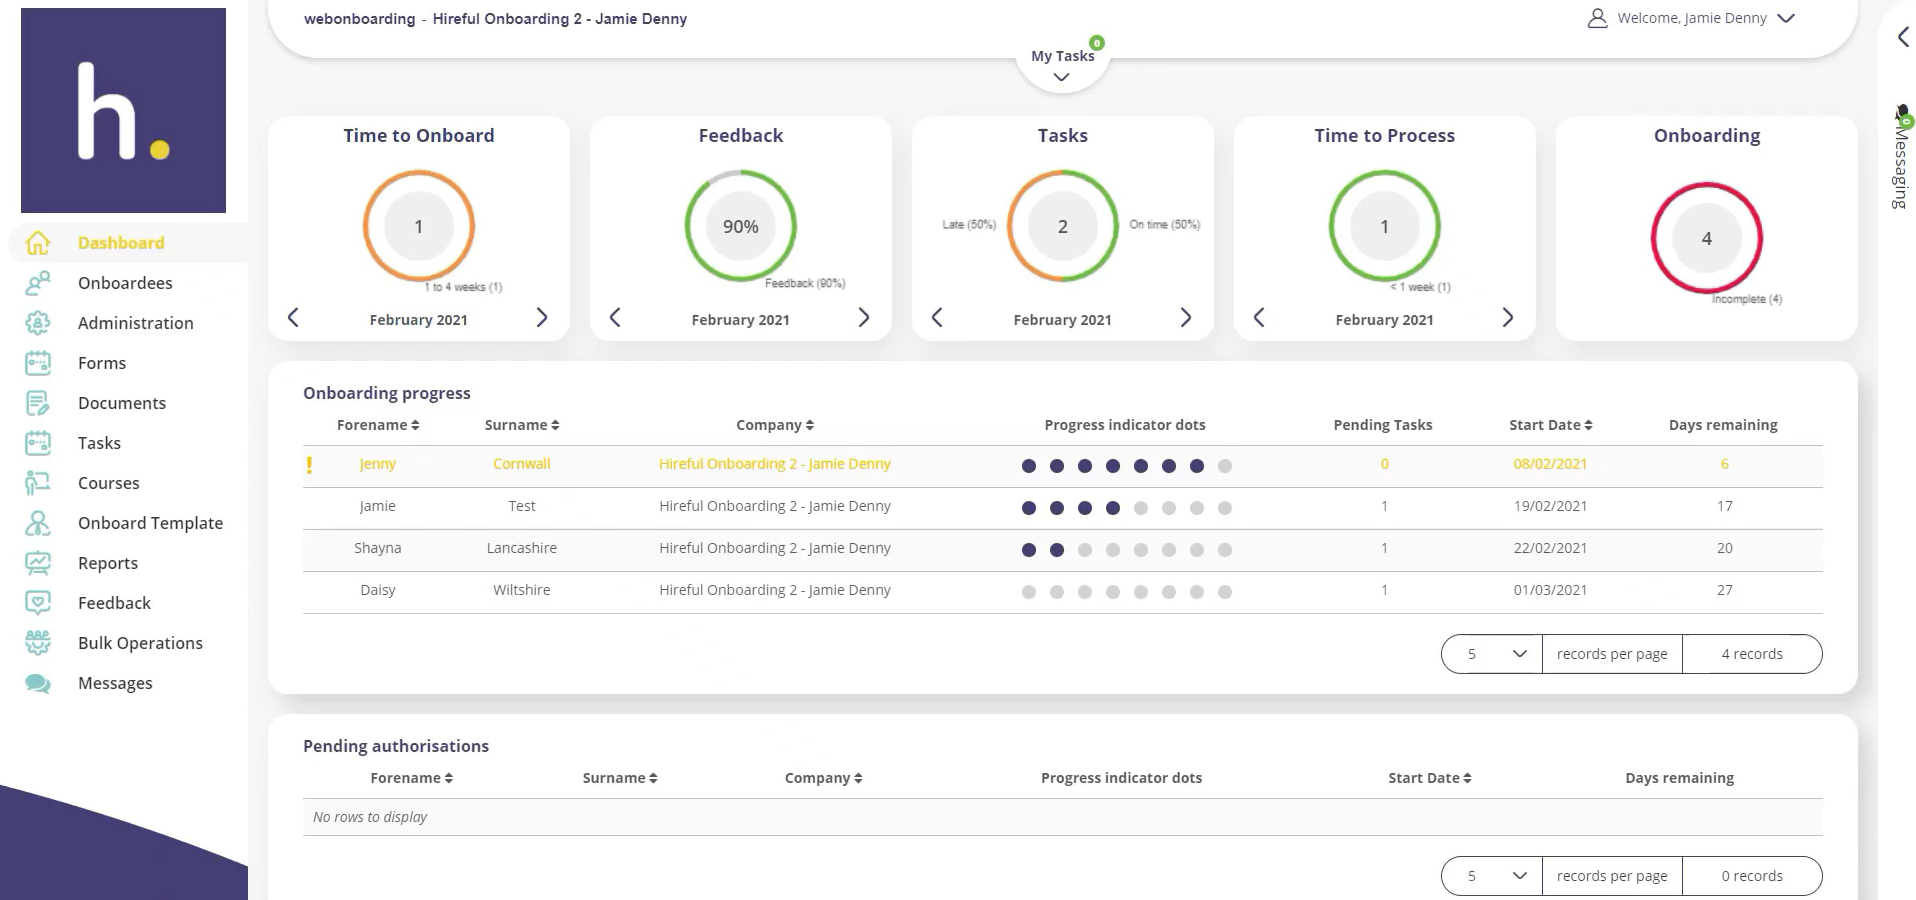 Onboarding dashboard. Showing overview of progress of all current onboardees.